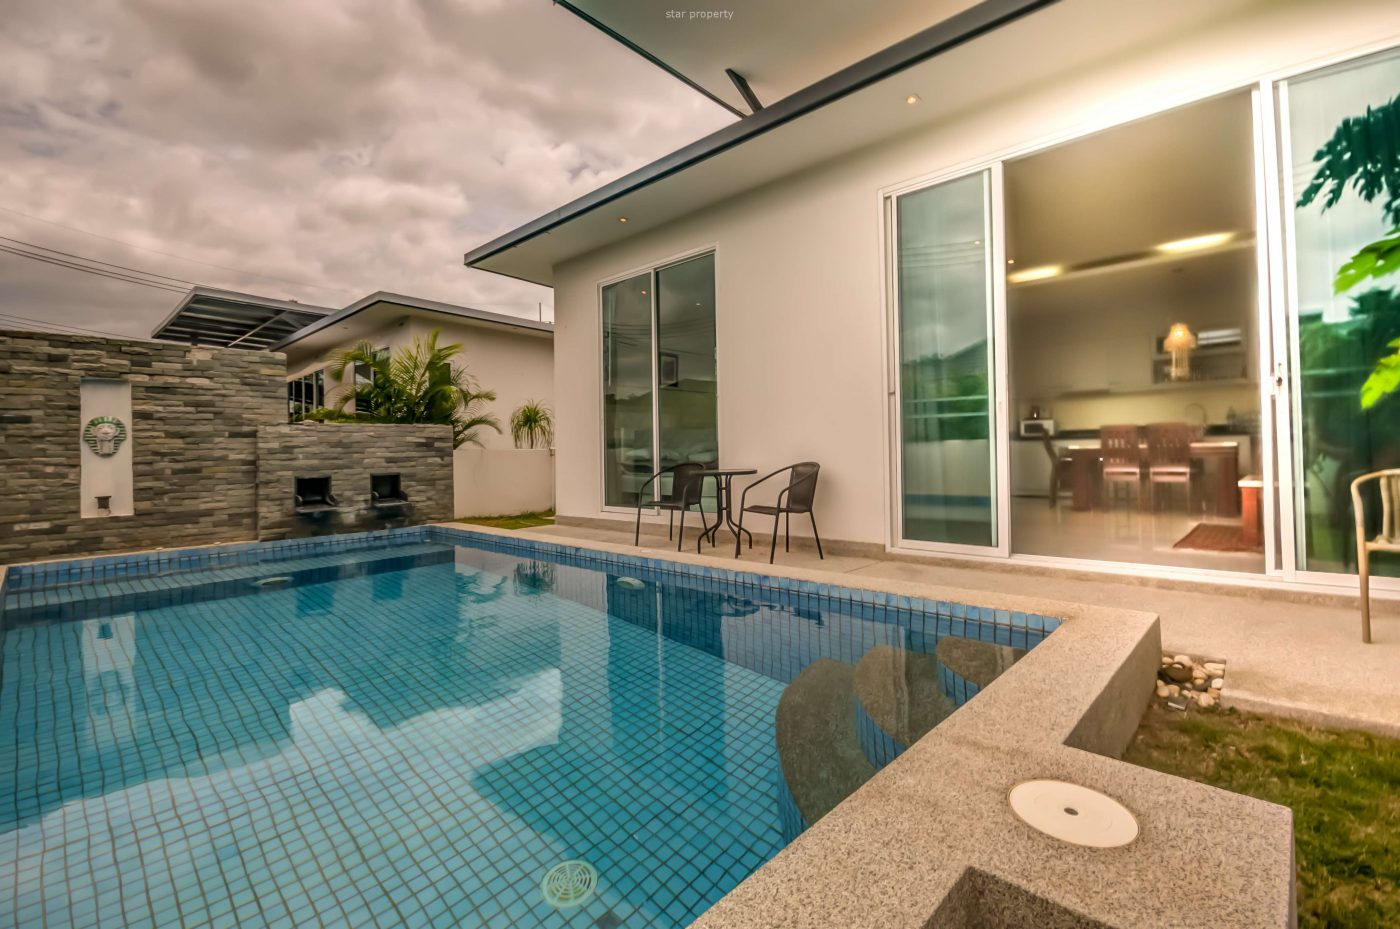 Beautiful 2 Bedroom Pool Villa for Sale at Mil Pool Soi 102 at Hua Hin District, Prachuap Khiri Khan, Thailand